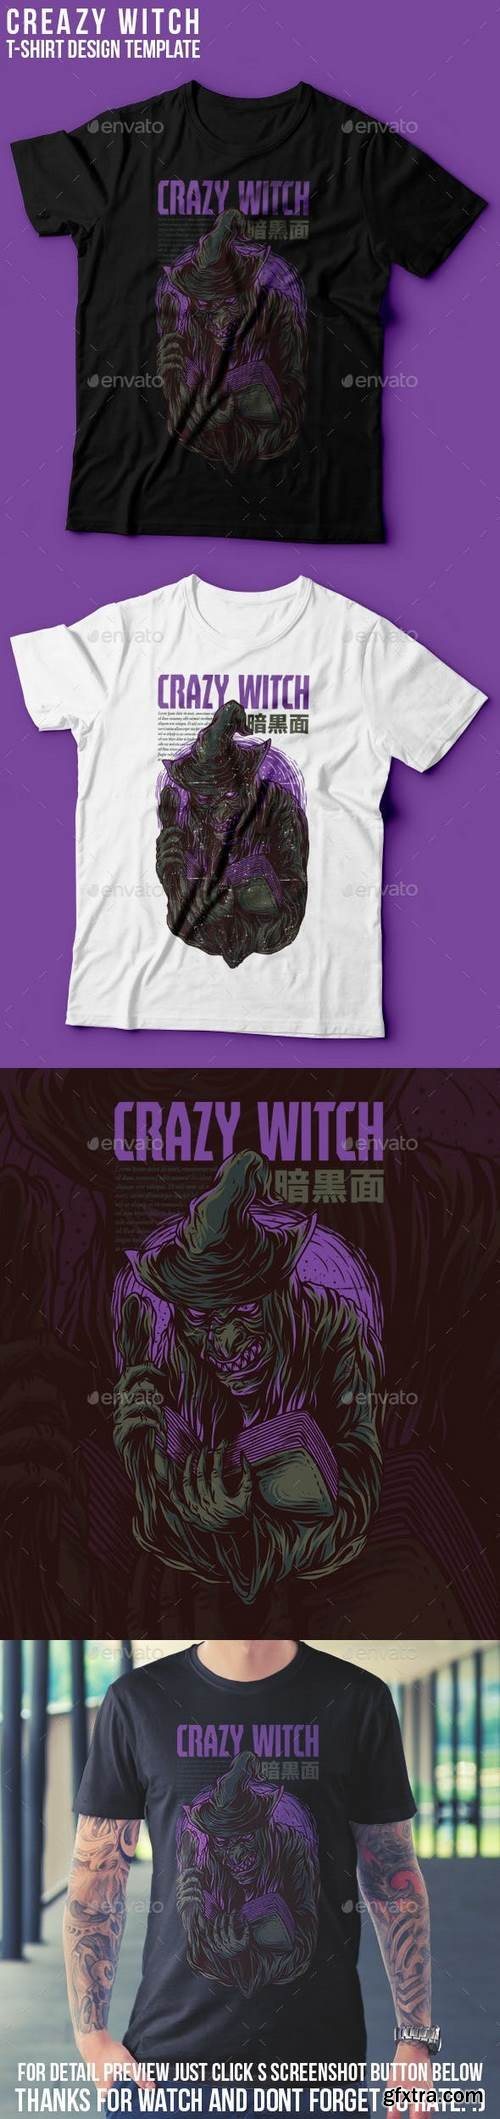 Graphicriver - Crazy Witch T-Shirt Design 22939377